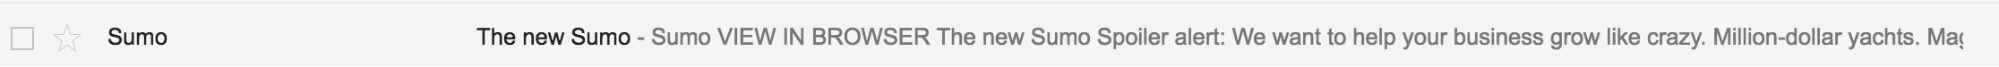 Sumo email subject line copy